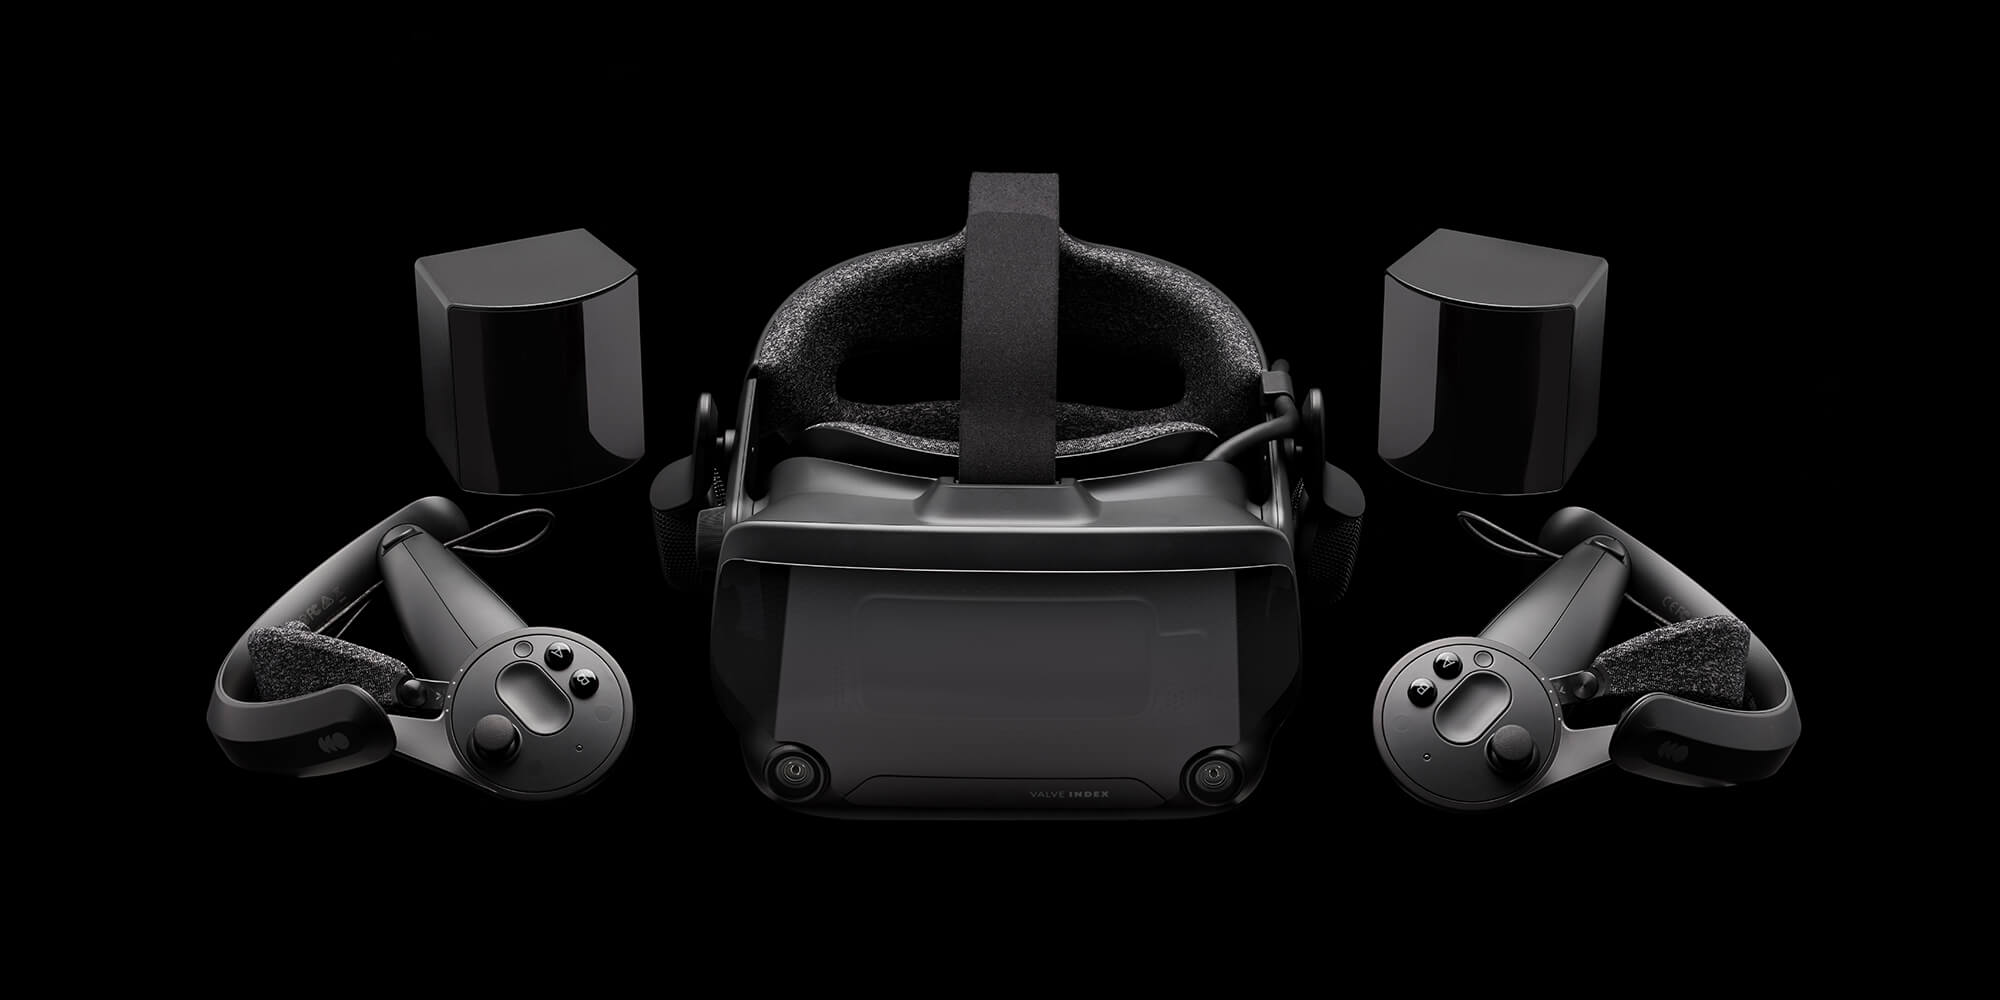 Valve Index - Upgrade your experience - Valve Corporation